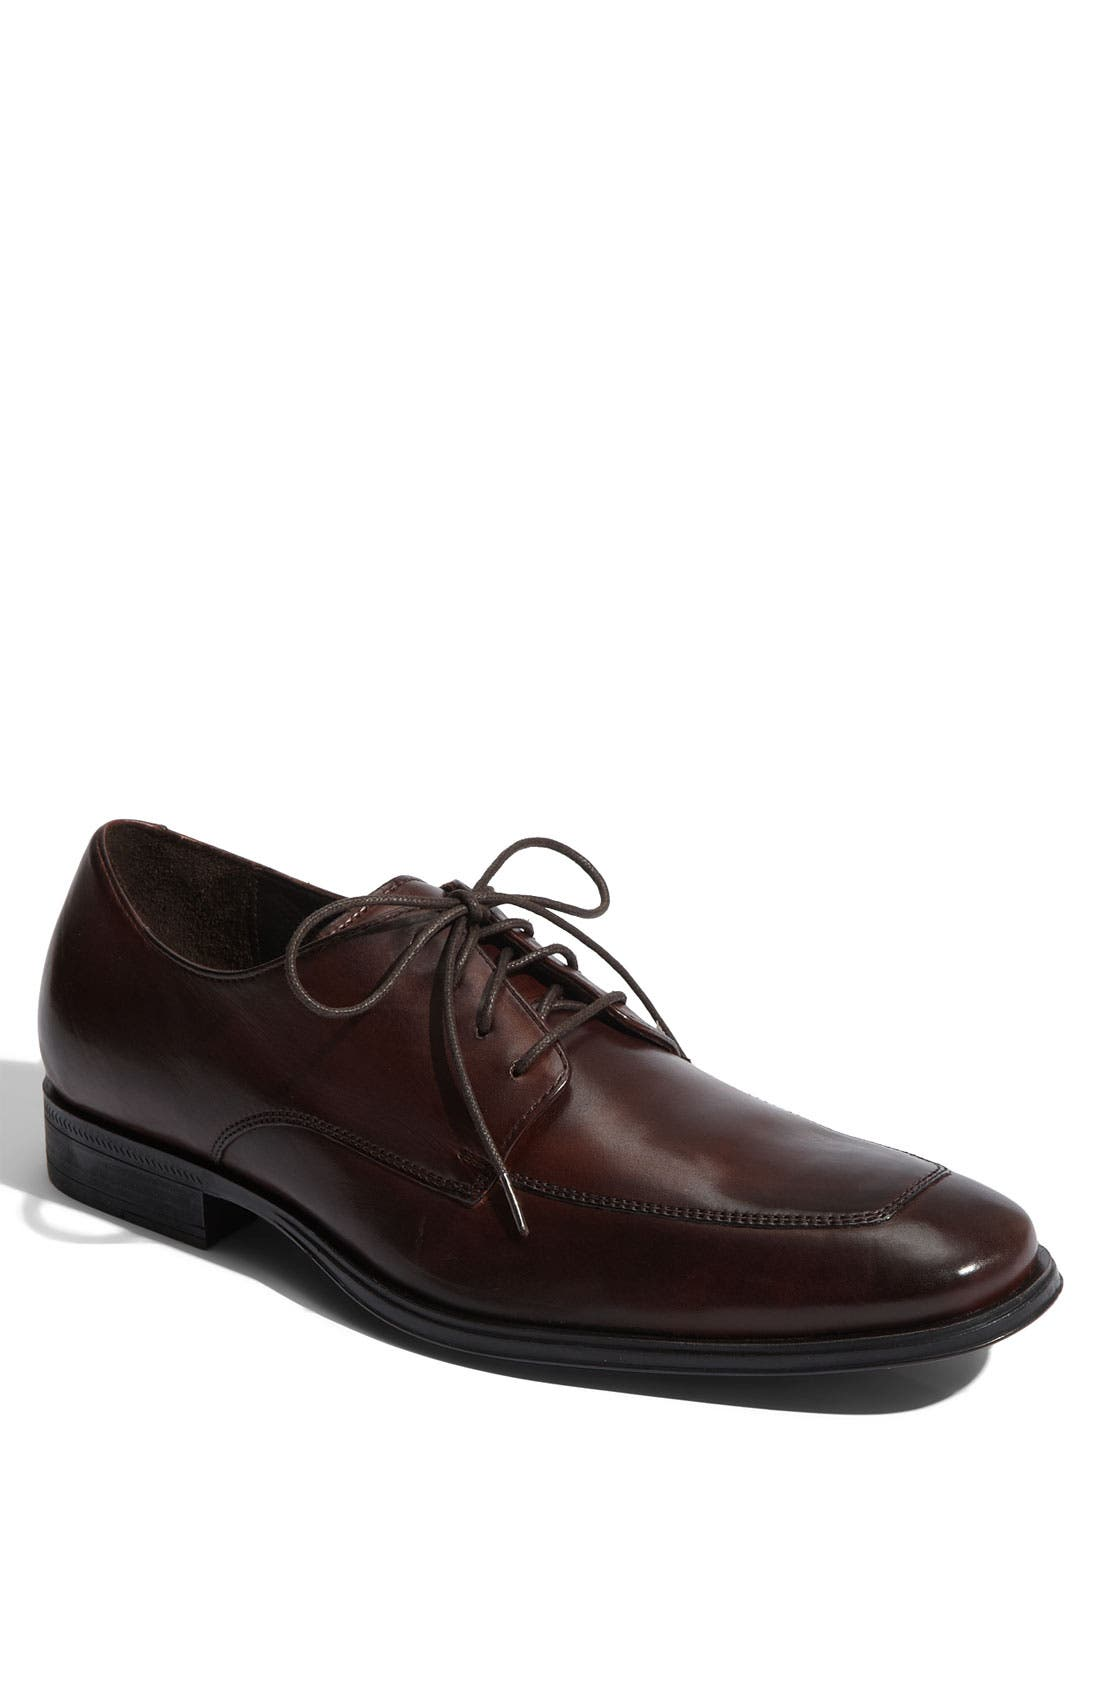 Alternate Image 1 Selected - Cole Haan 'Air Adams' Oxford (Men)